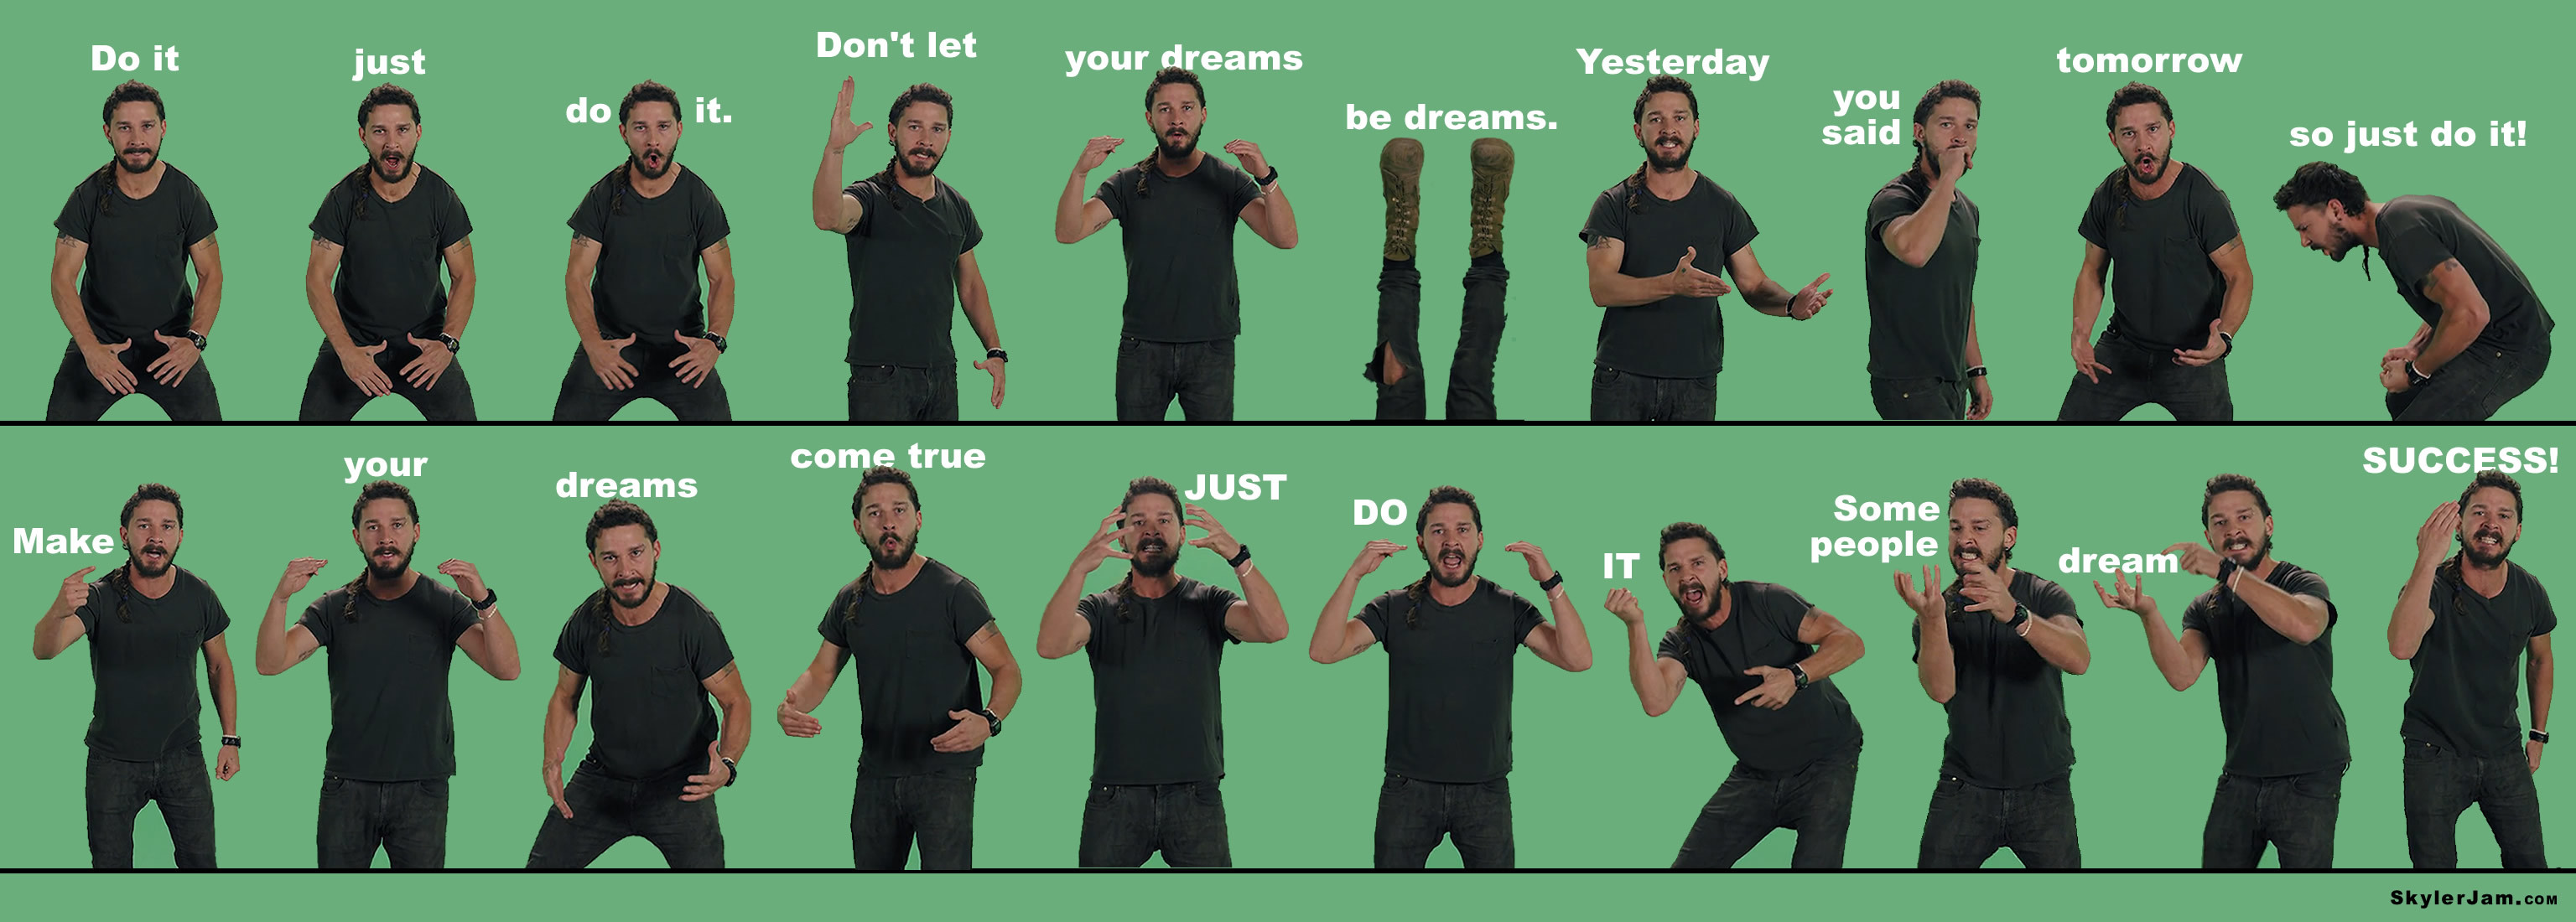 shia+motivation | 20 Motivational Shia LaBeouf Poses and quotes to get you  pumped for